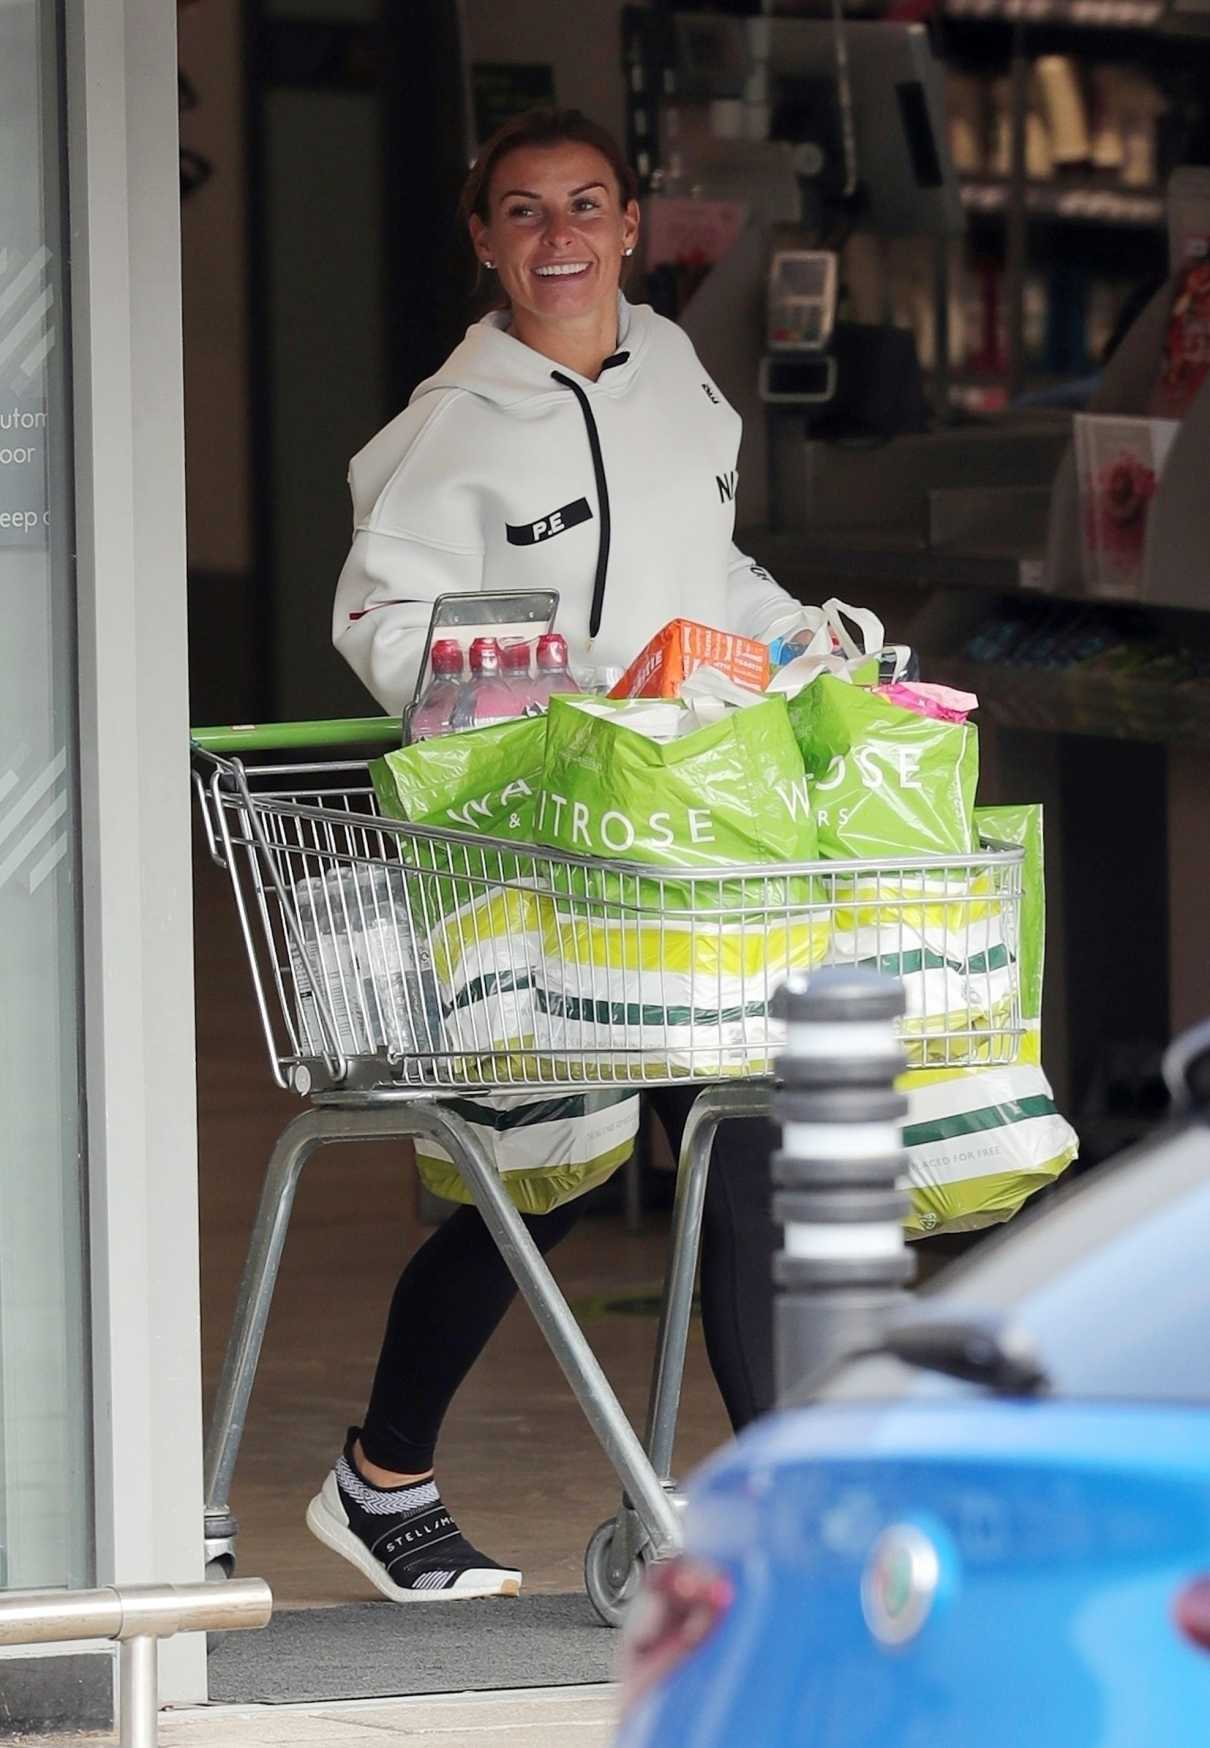 Coleen Rooney in a White Hoody Goes Grocery Shopping at Waitrose Supermarket in Cheshire 06/09/2020